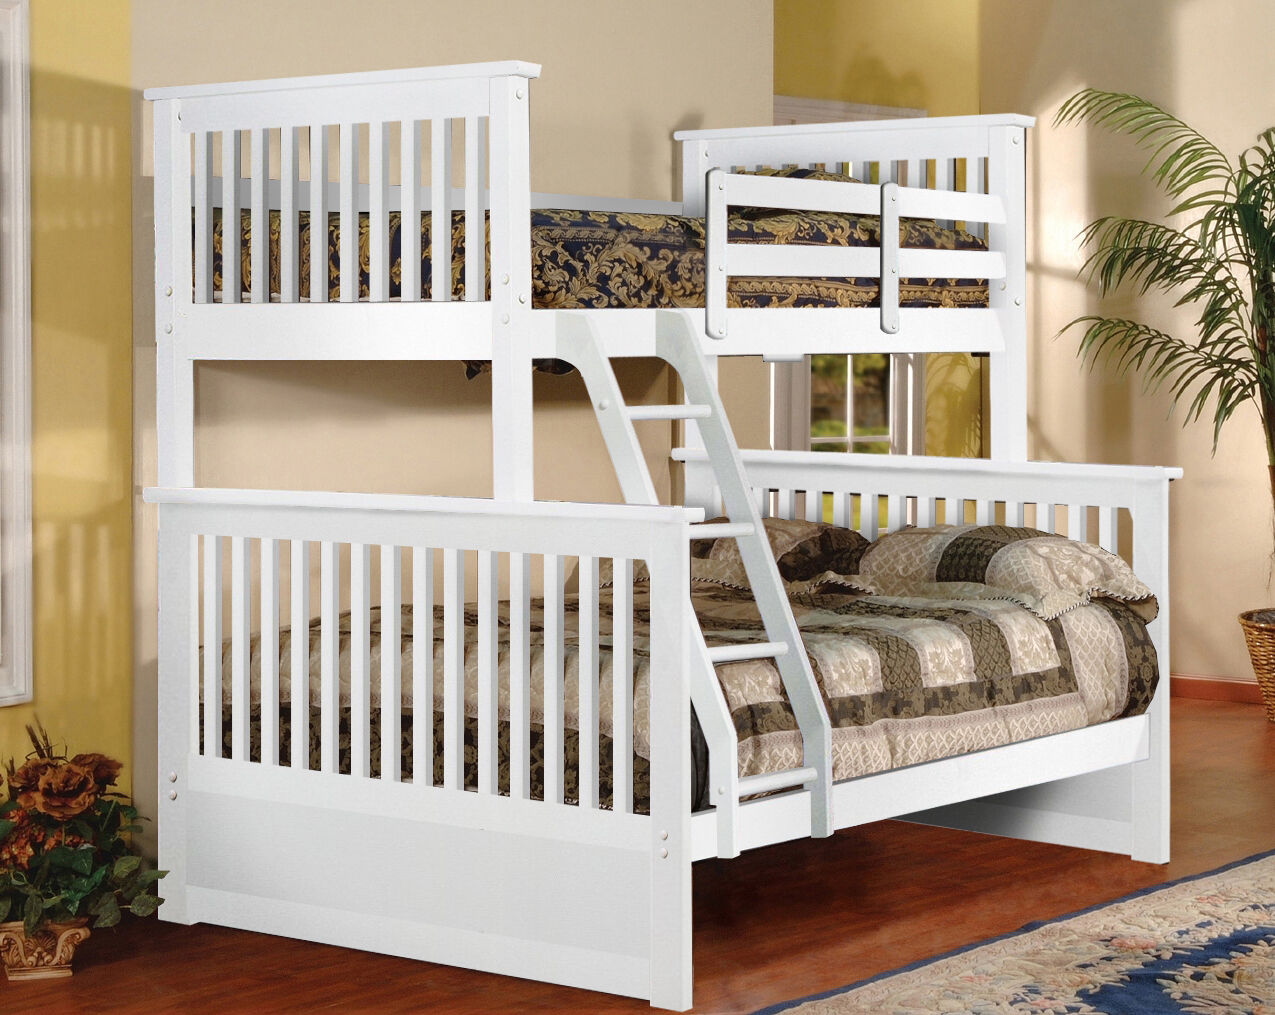 White Finish Wood Twin Over Full Size Convertible Bunk Bed